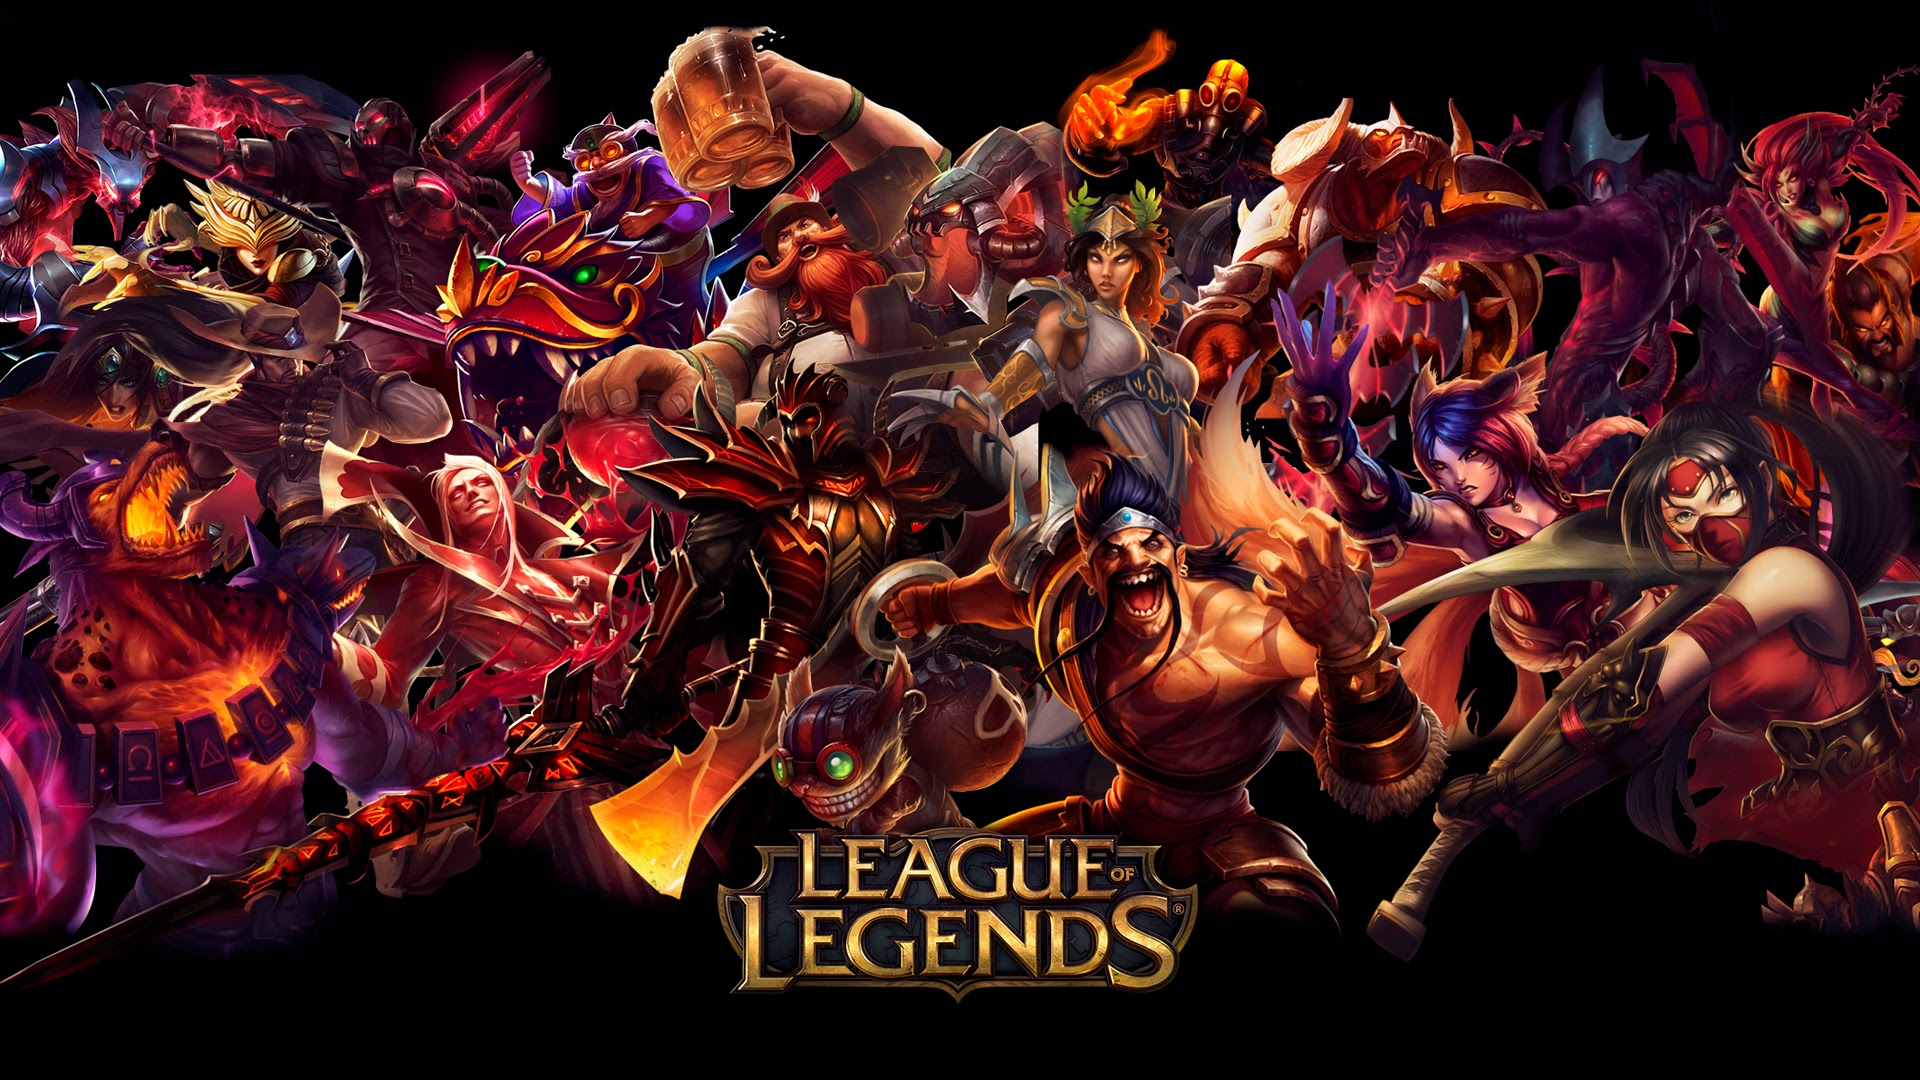 league de legends red hd wallpaper background lol champion x